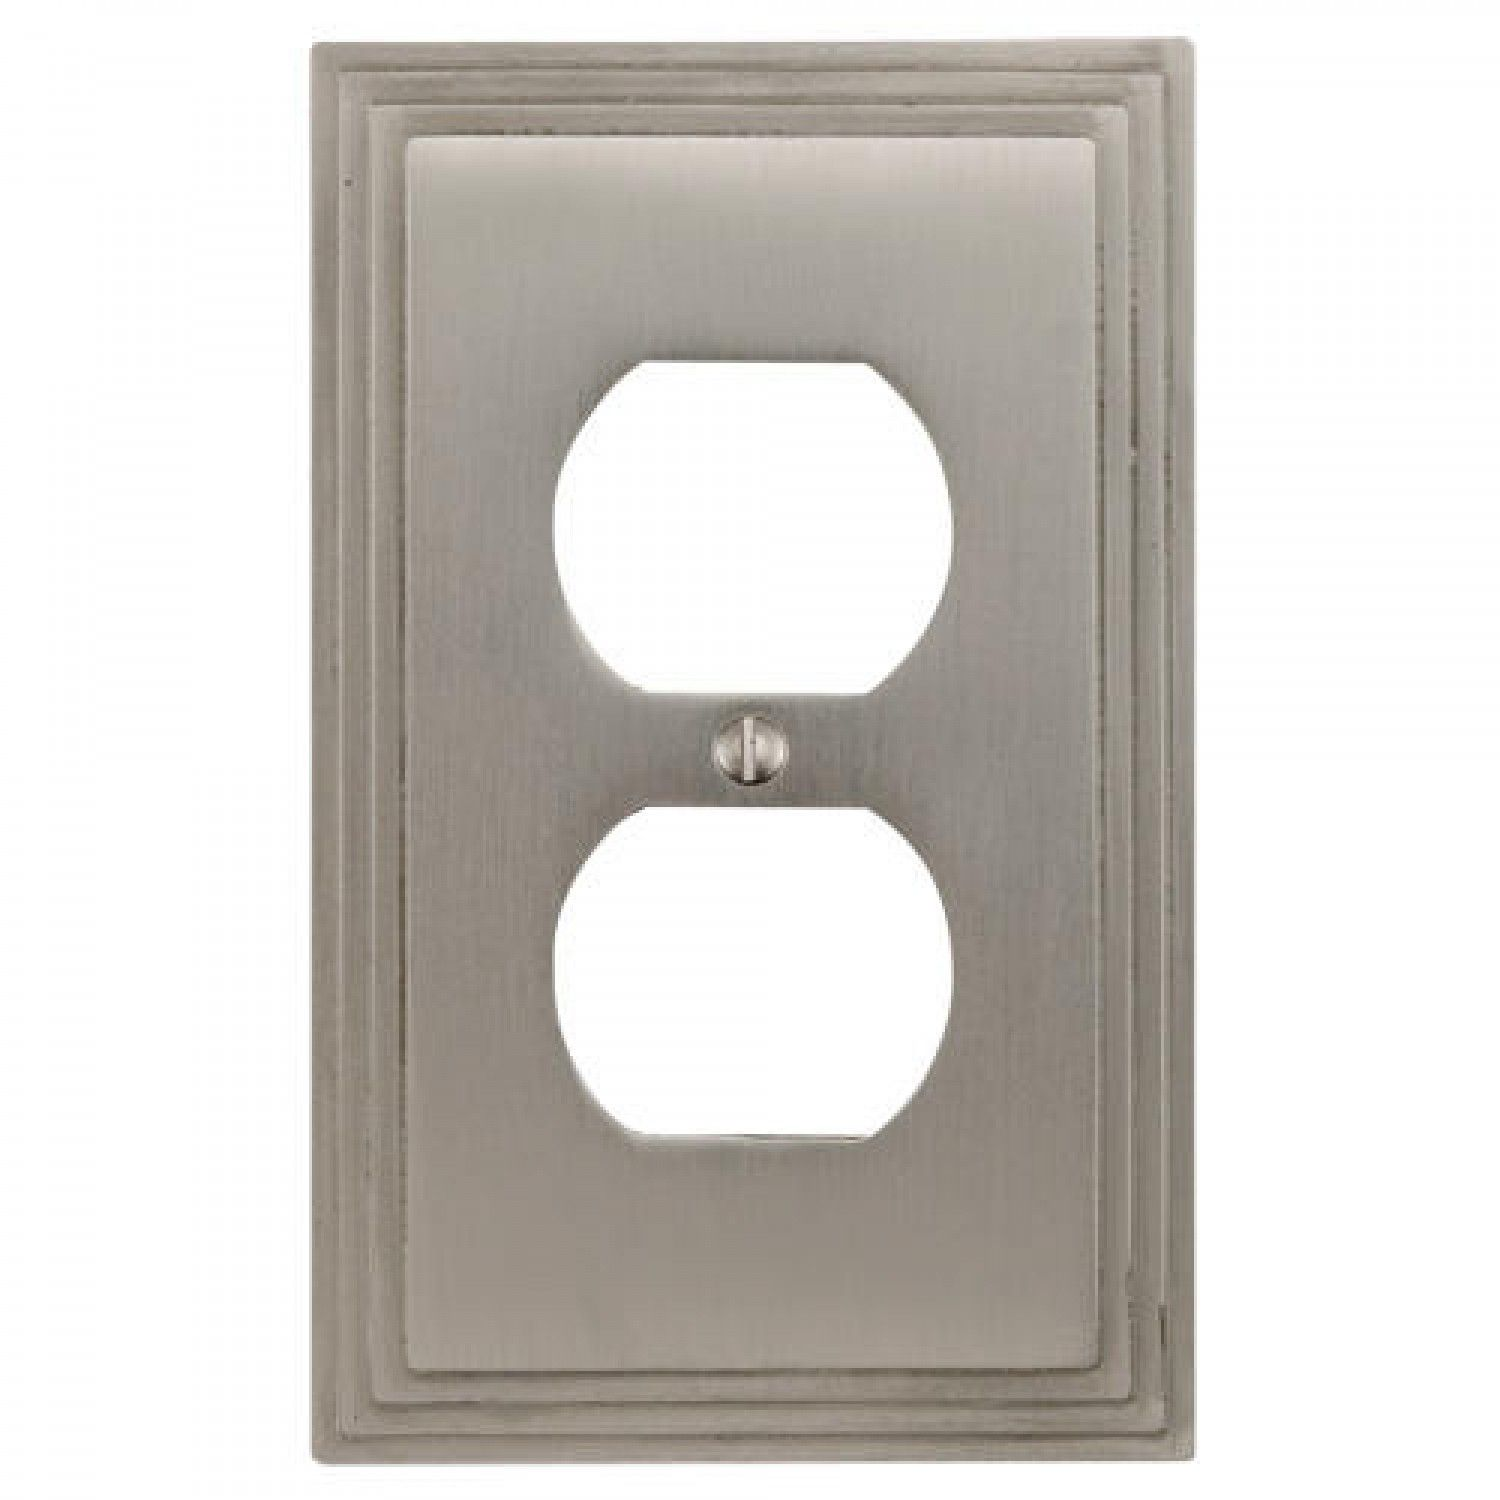 Wall Plug Plates Deco Design Solid Brass Duplex Outlet Cover  Solid Brass Outlets